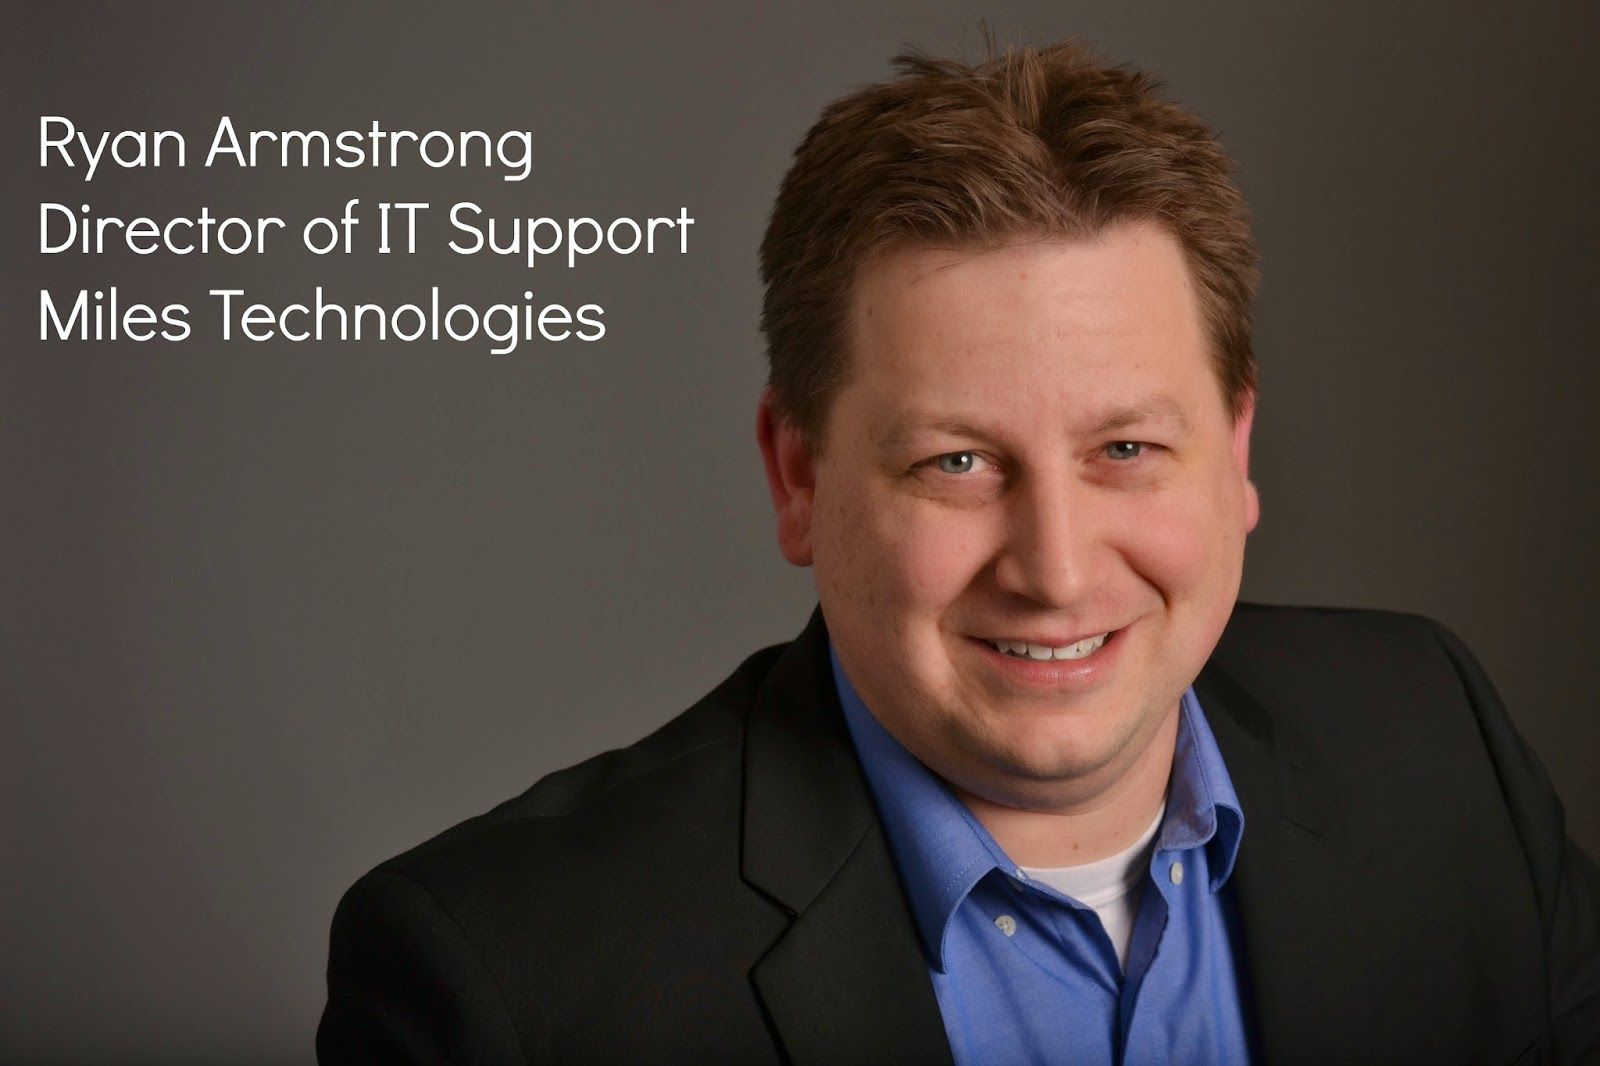 Ryan Armstrong Director of IT Support